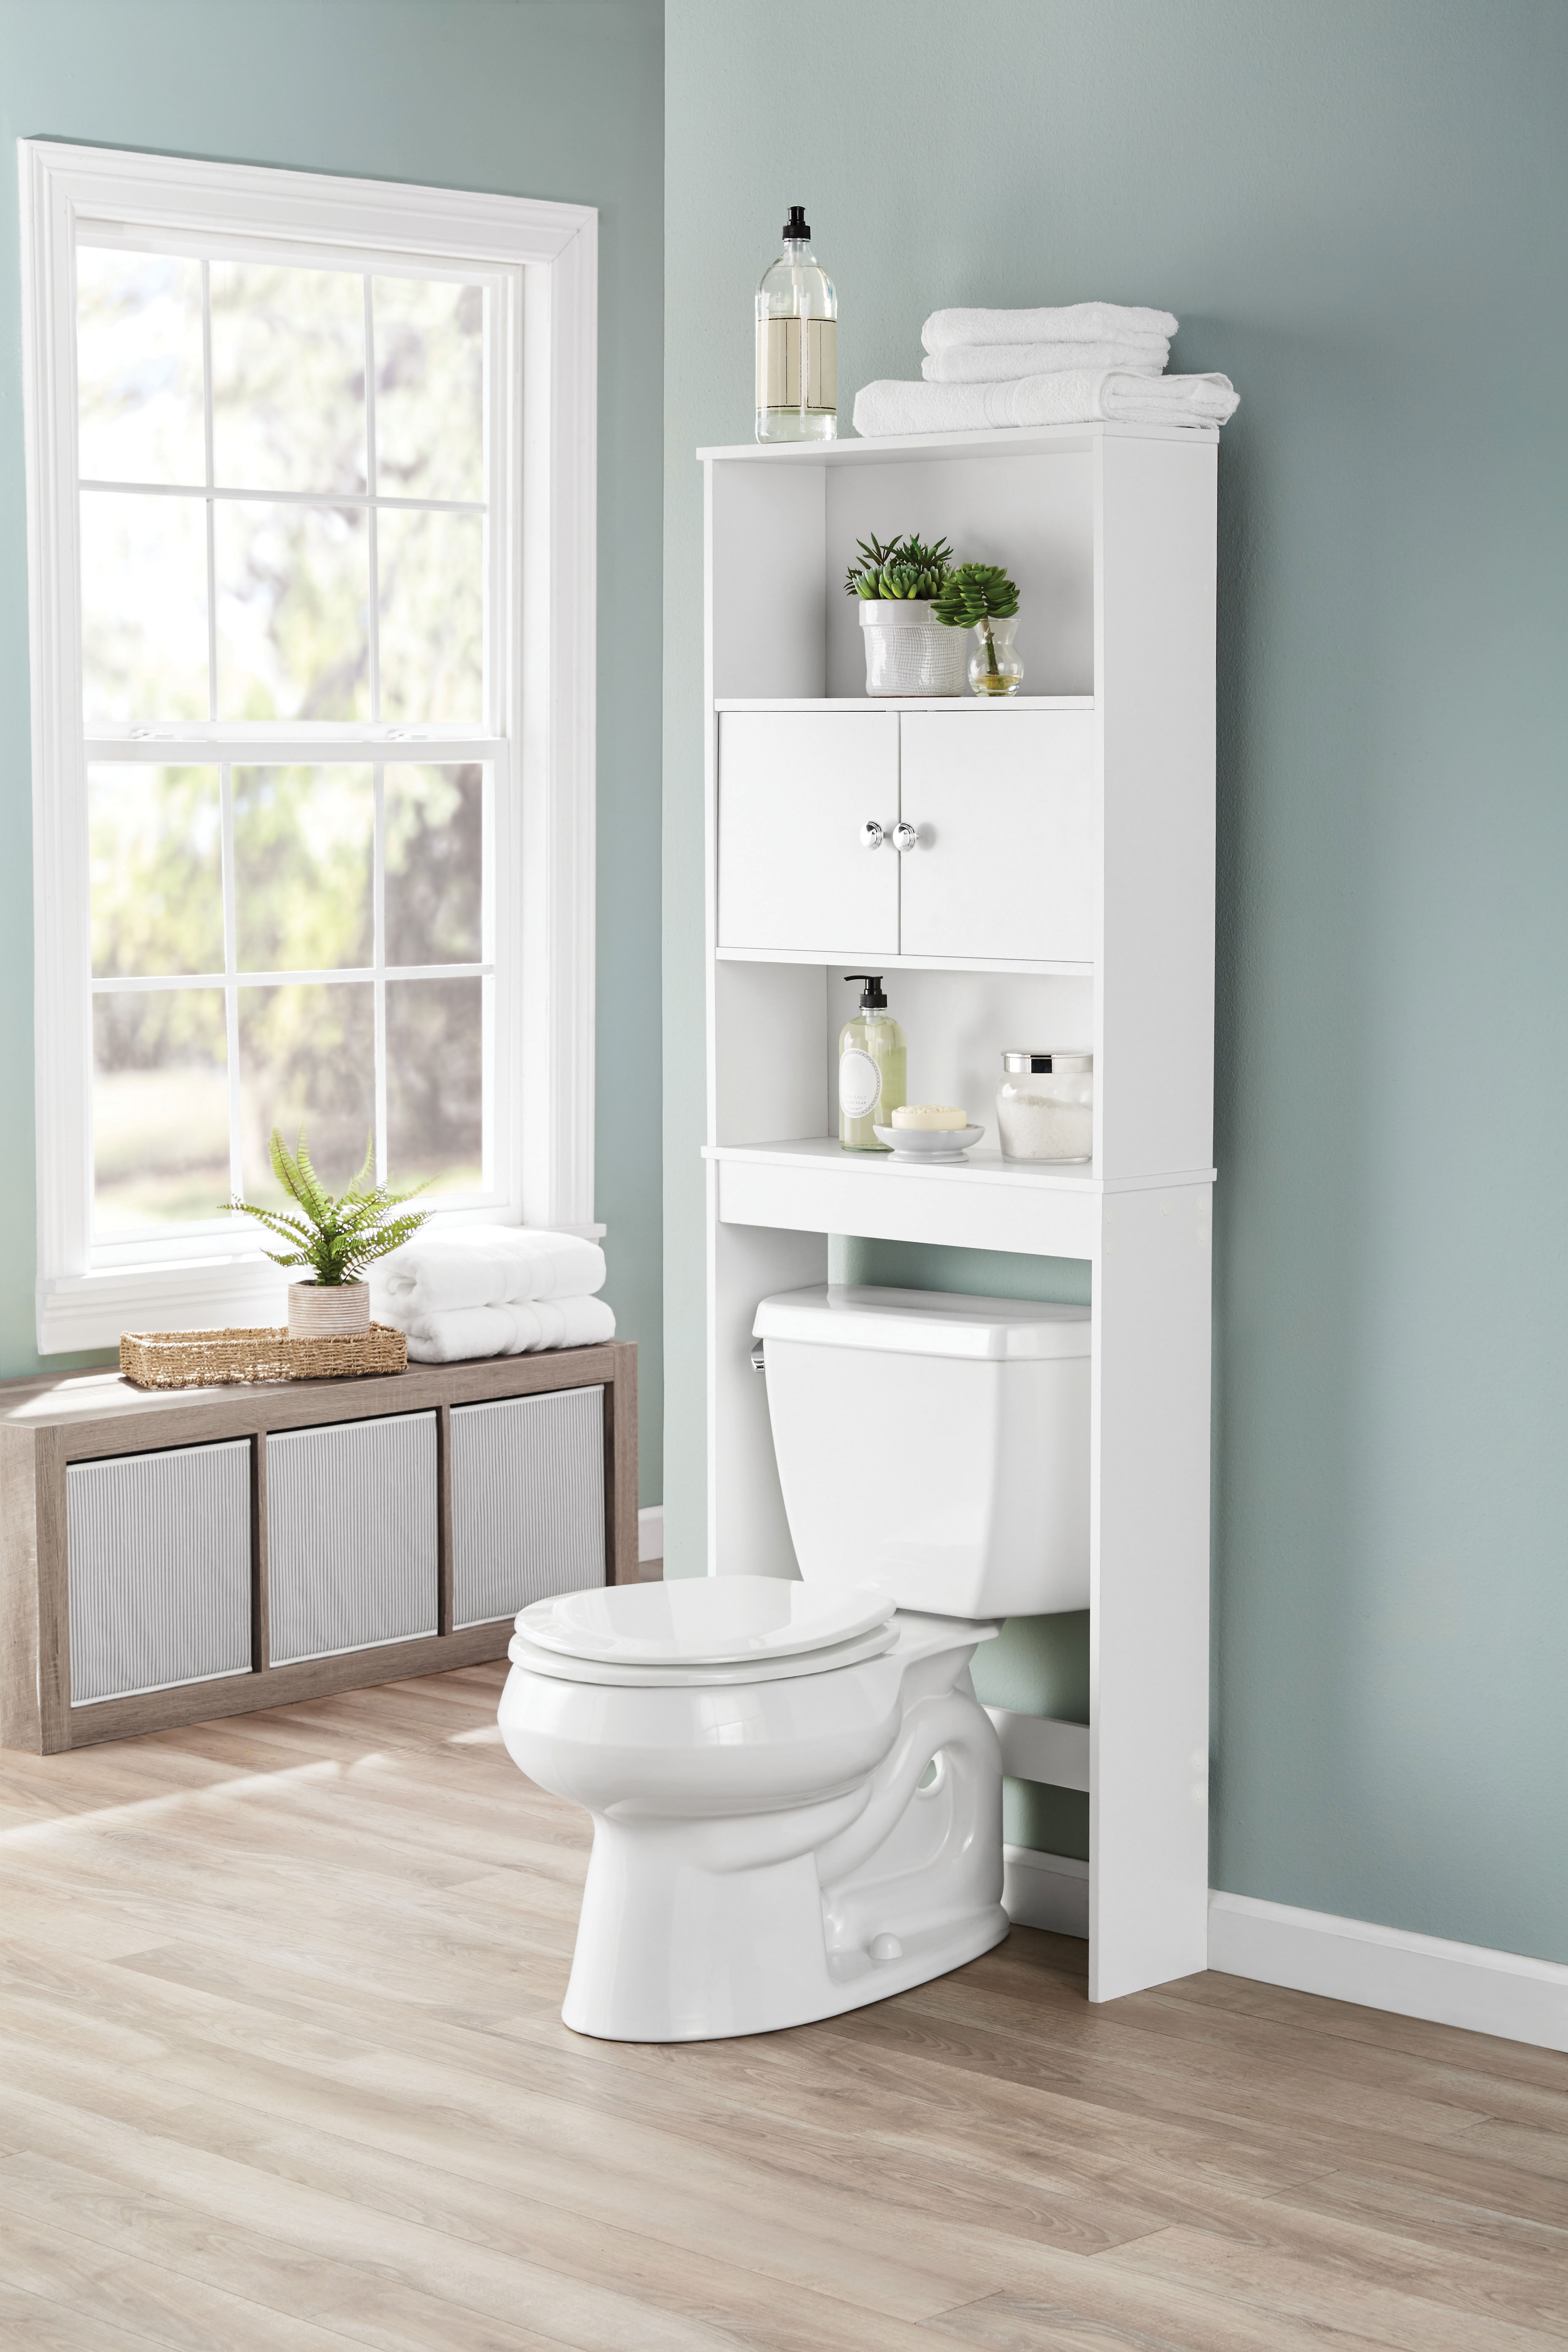 Mainstays Bathroom Storage Over The Toilet Space Saver White intended for measurements 3717 X 5575